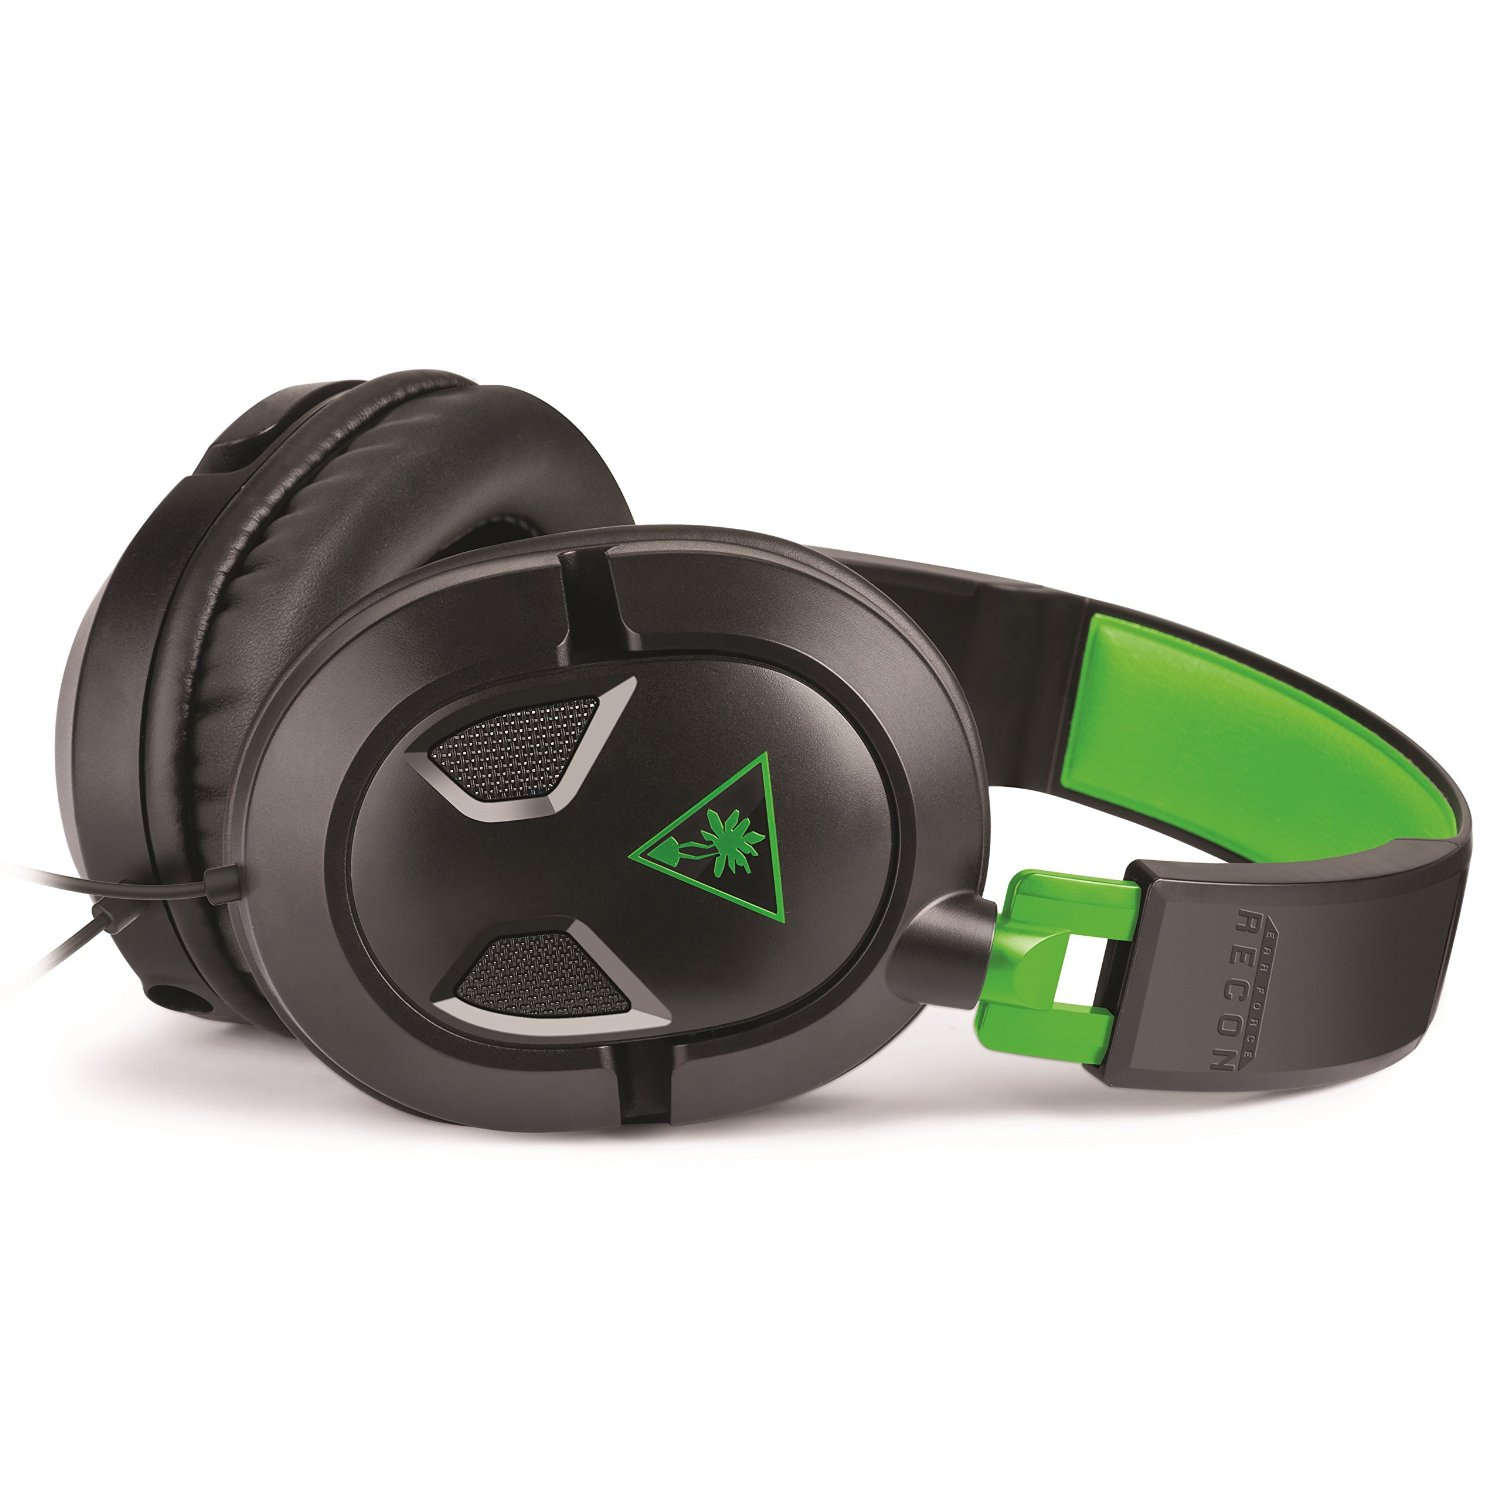 More Images Of The Turtle Beach Ear Force Recon 50X Gaming